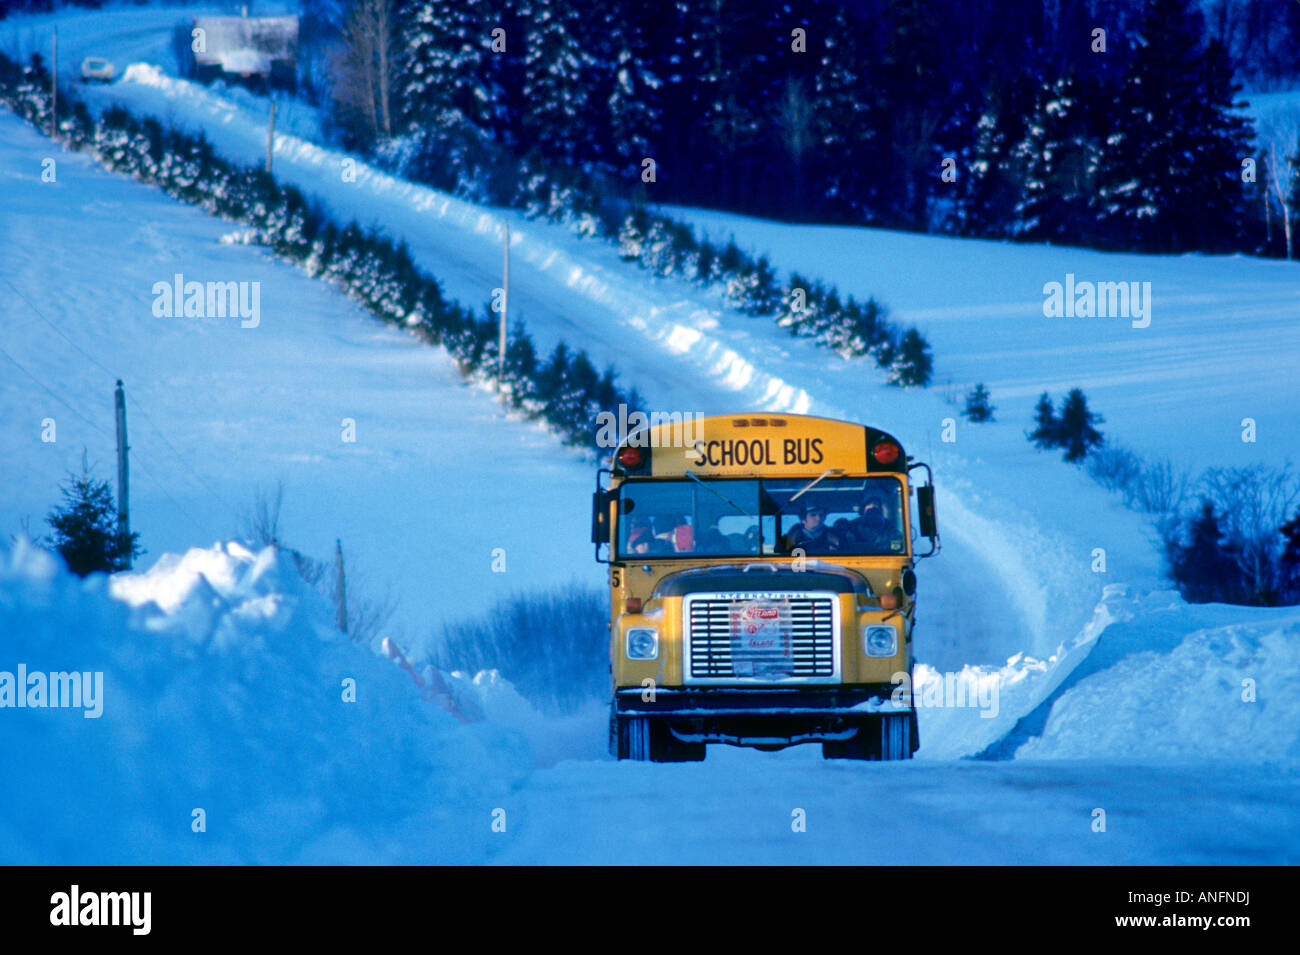 Bus scolaire à Riverdale, Prince Edward Island, Canada. Photo Stock